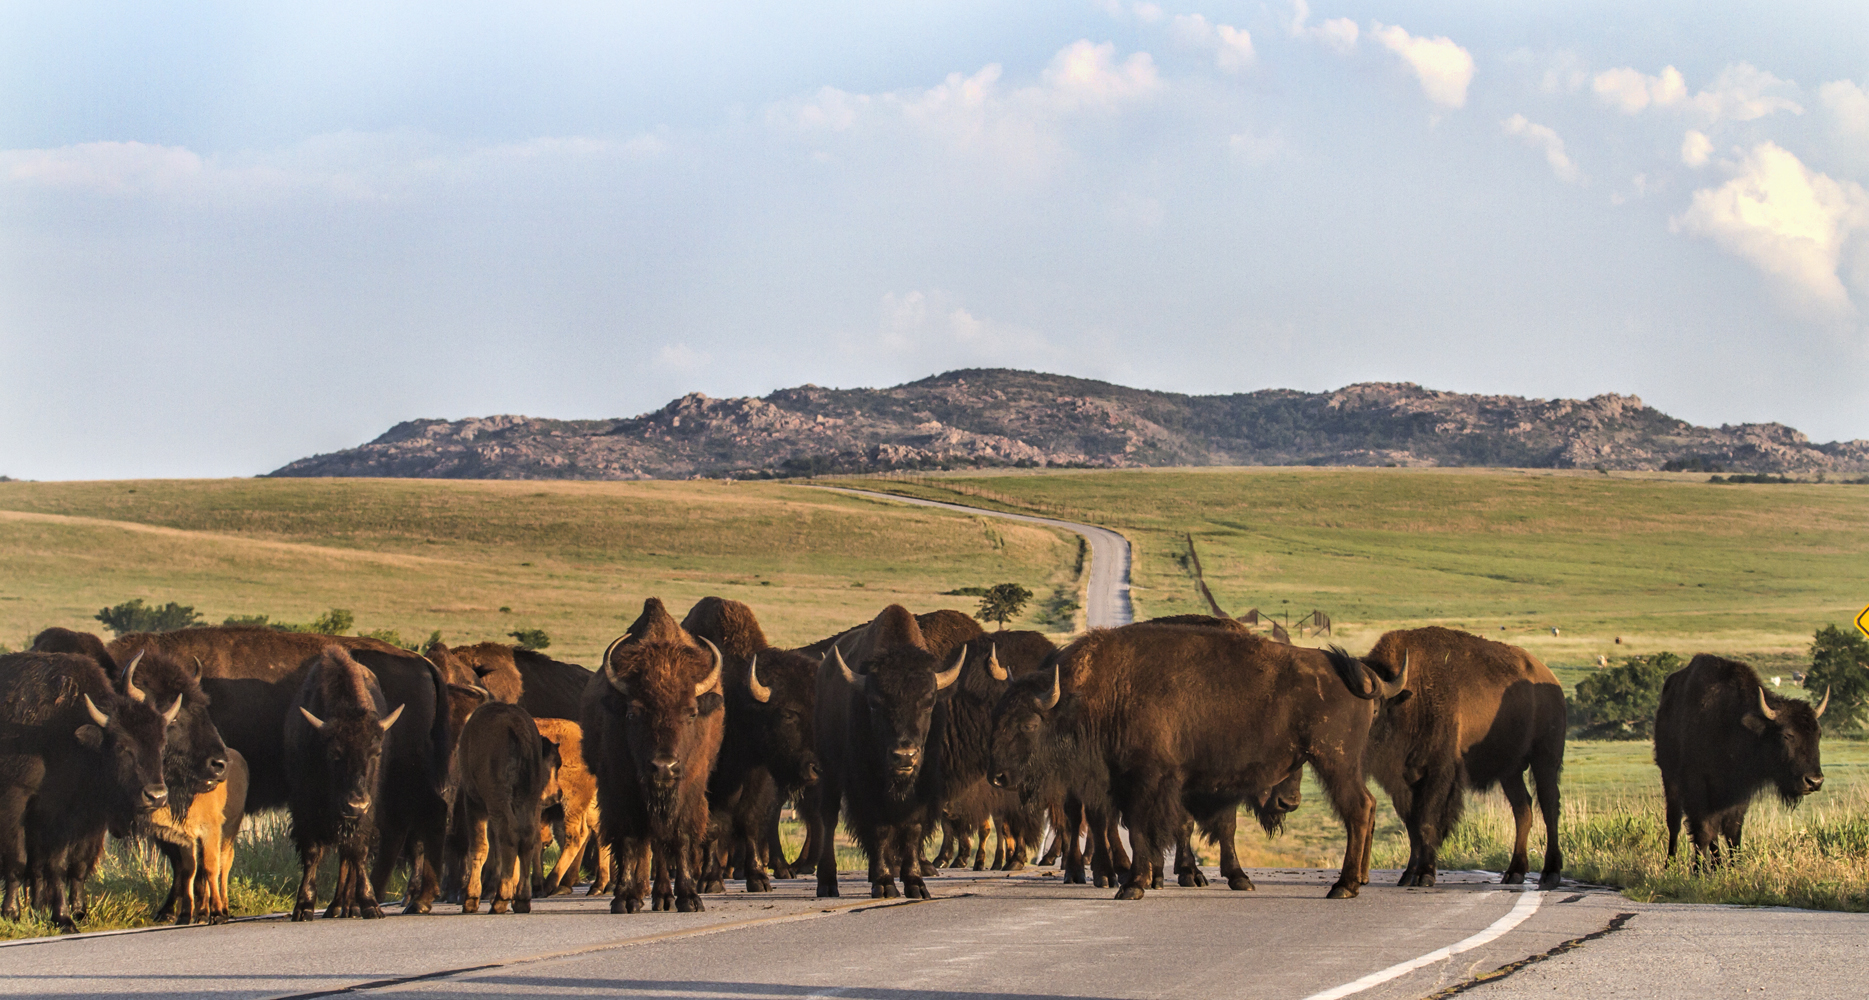 I Want to Live in a World Where #WaterisLife & Bison Bring Courage